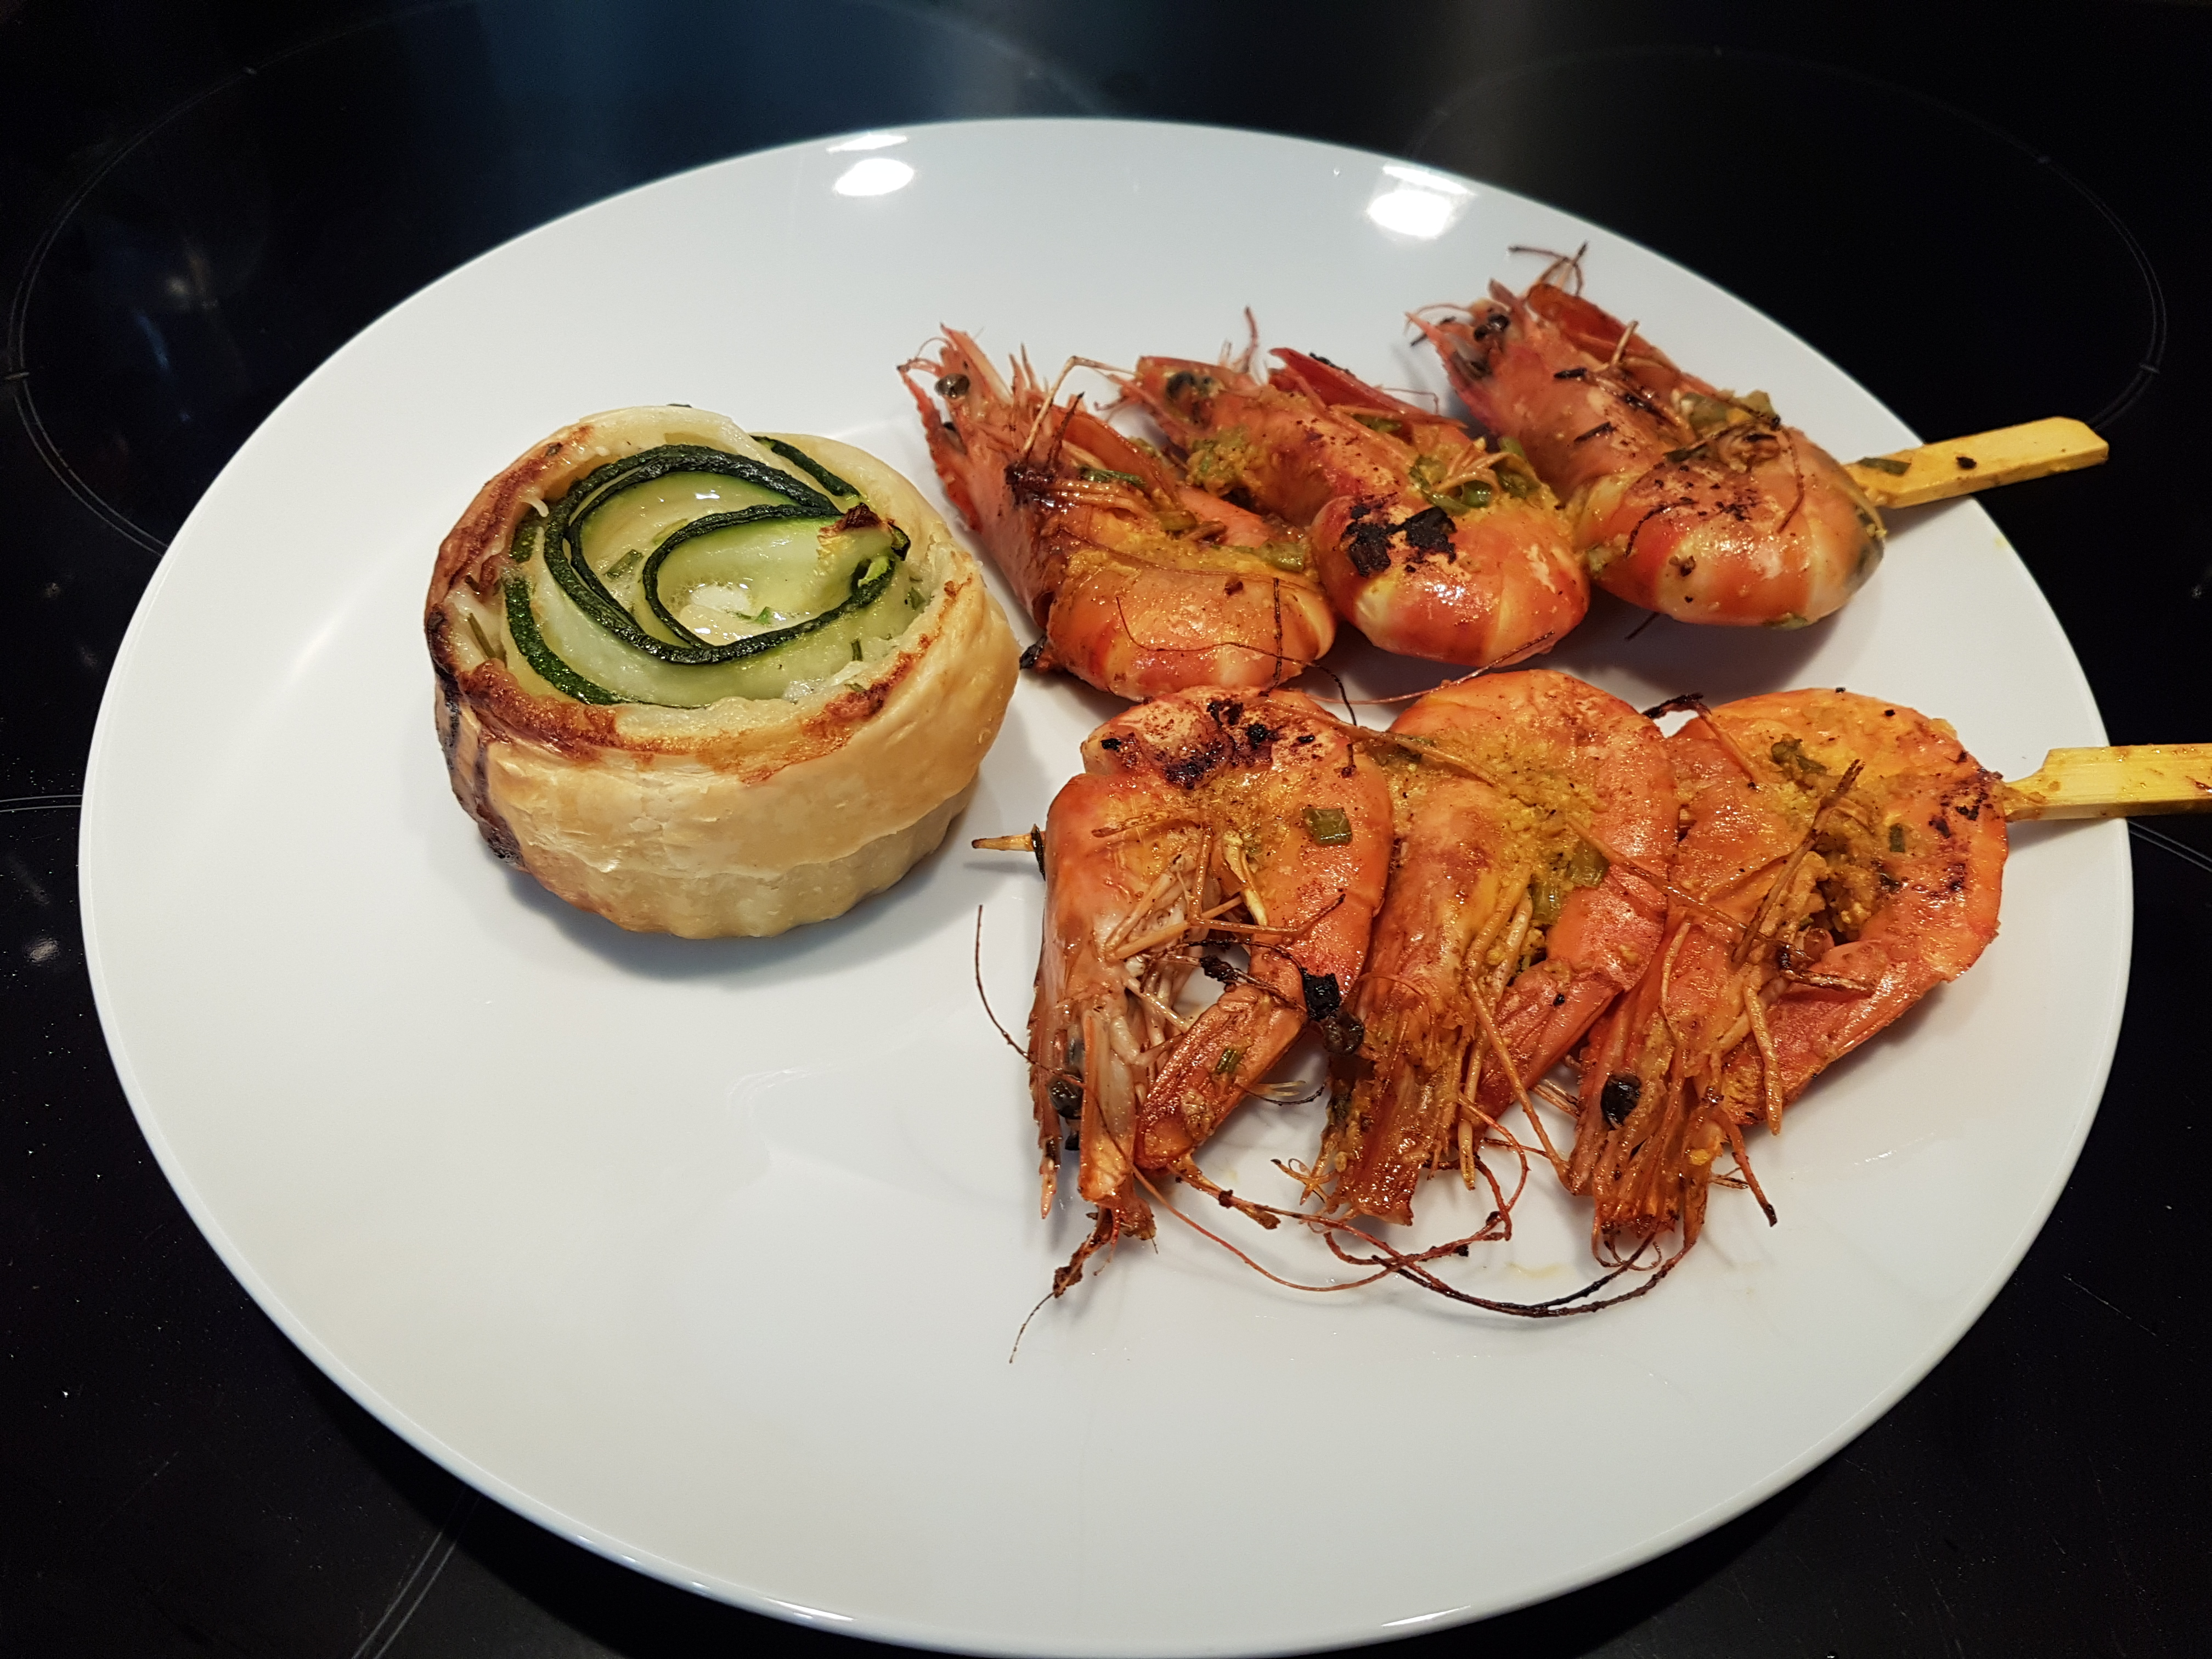 Recette de brochettes de gambas grill es - Accompagnement gambas grillees ...